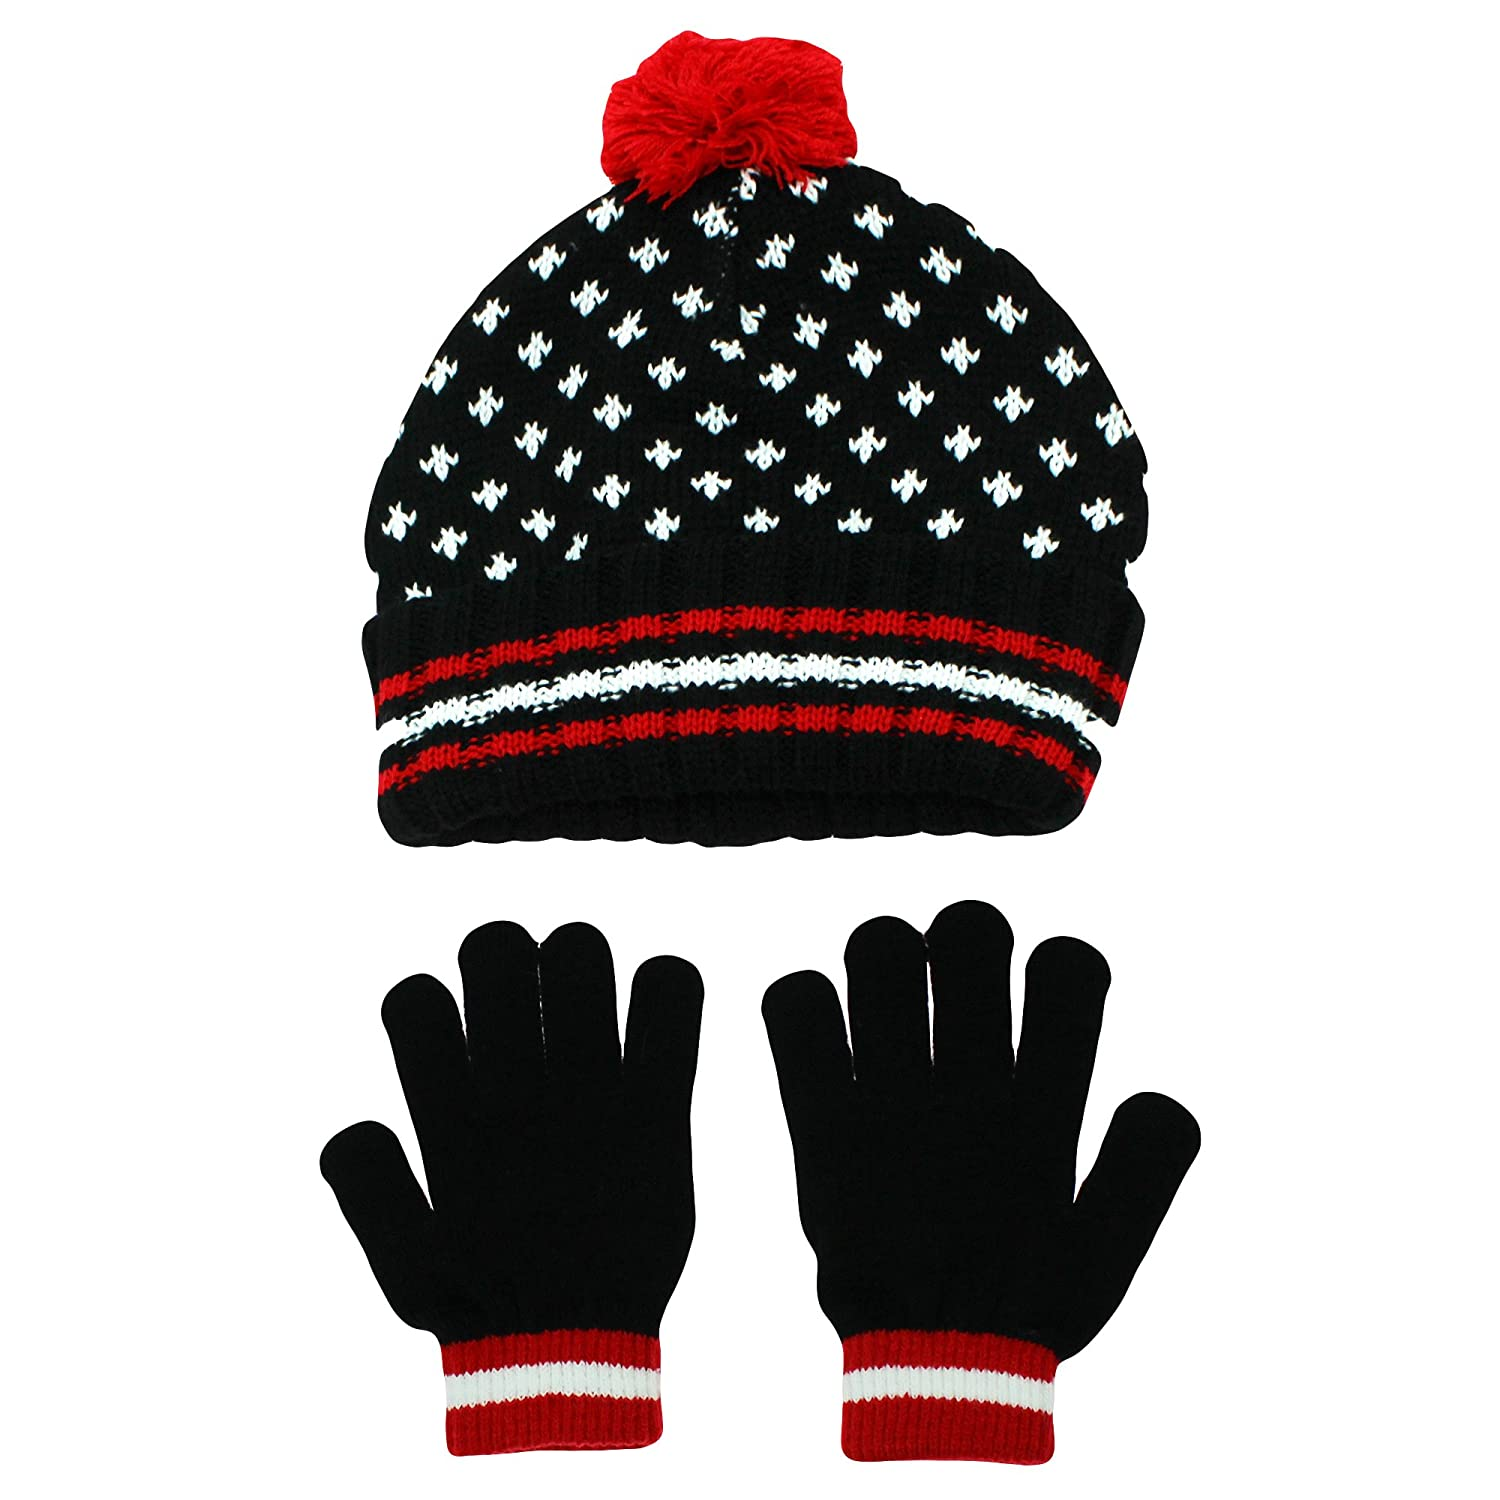 Nolan Boys Thermal Knit Beanie Cap and Glove Set Youth 4-16 Black Red